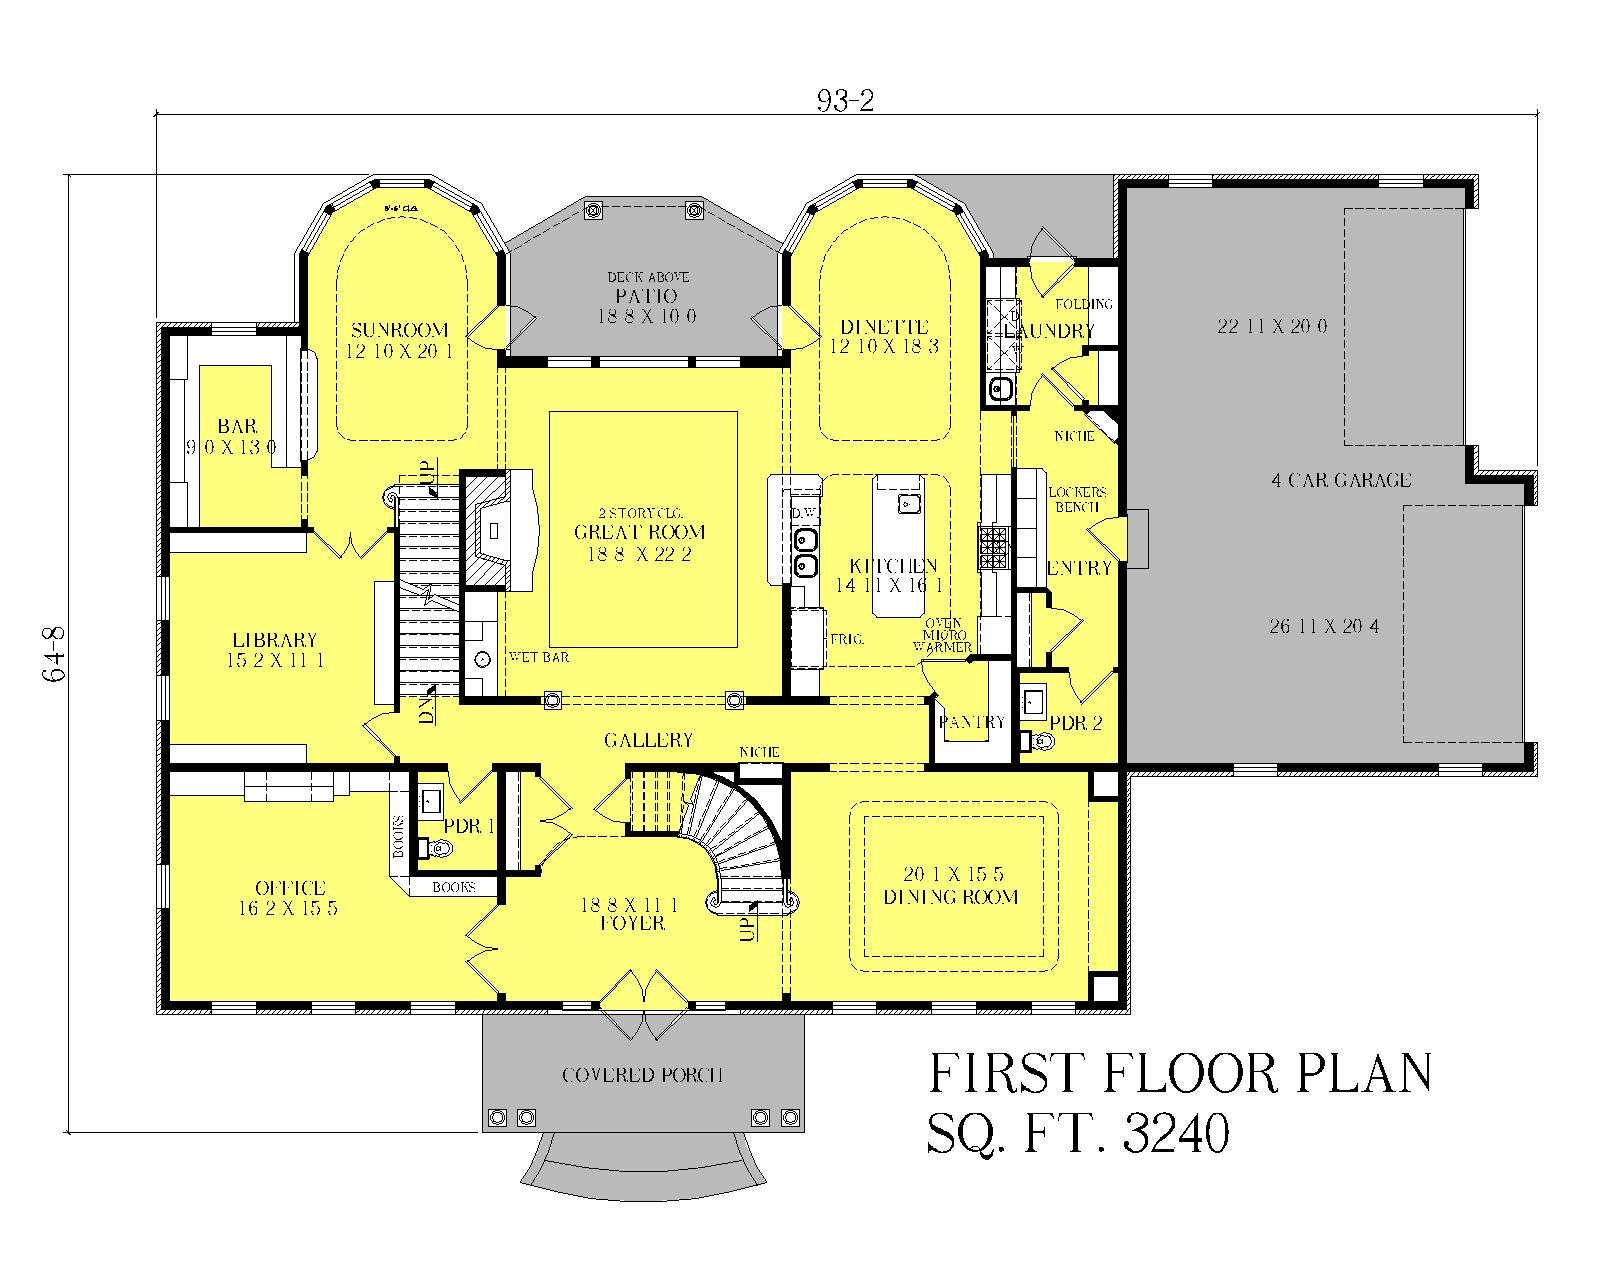 Georgian manor heislen designs for Georgian mansion floor plans